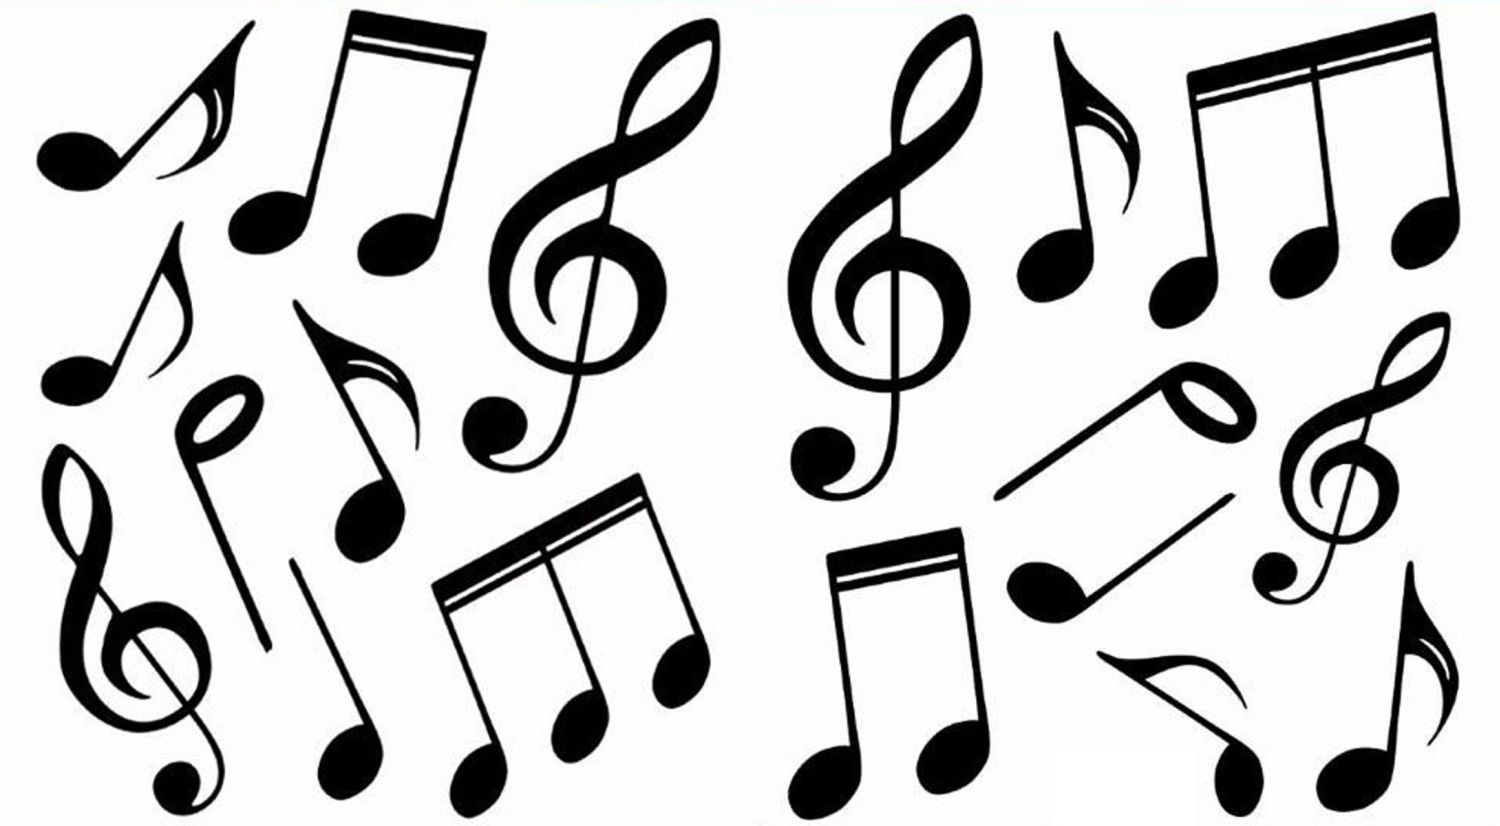 Images of music notes symbols free download best images of music 1500x826 music notes black and white music notes symbols clipart buycottarizona